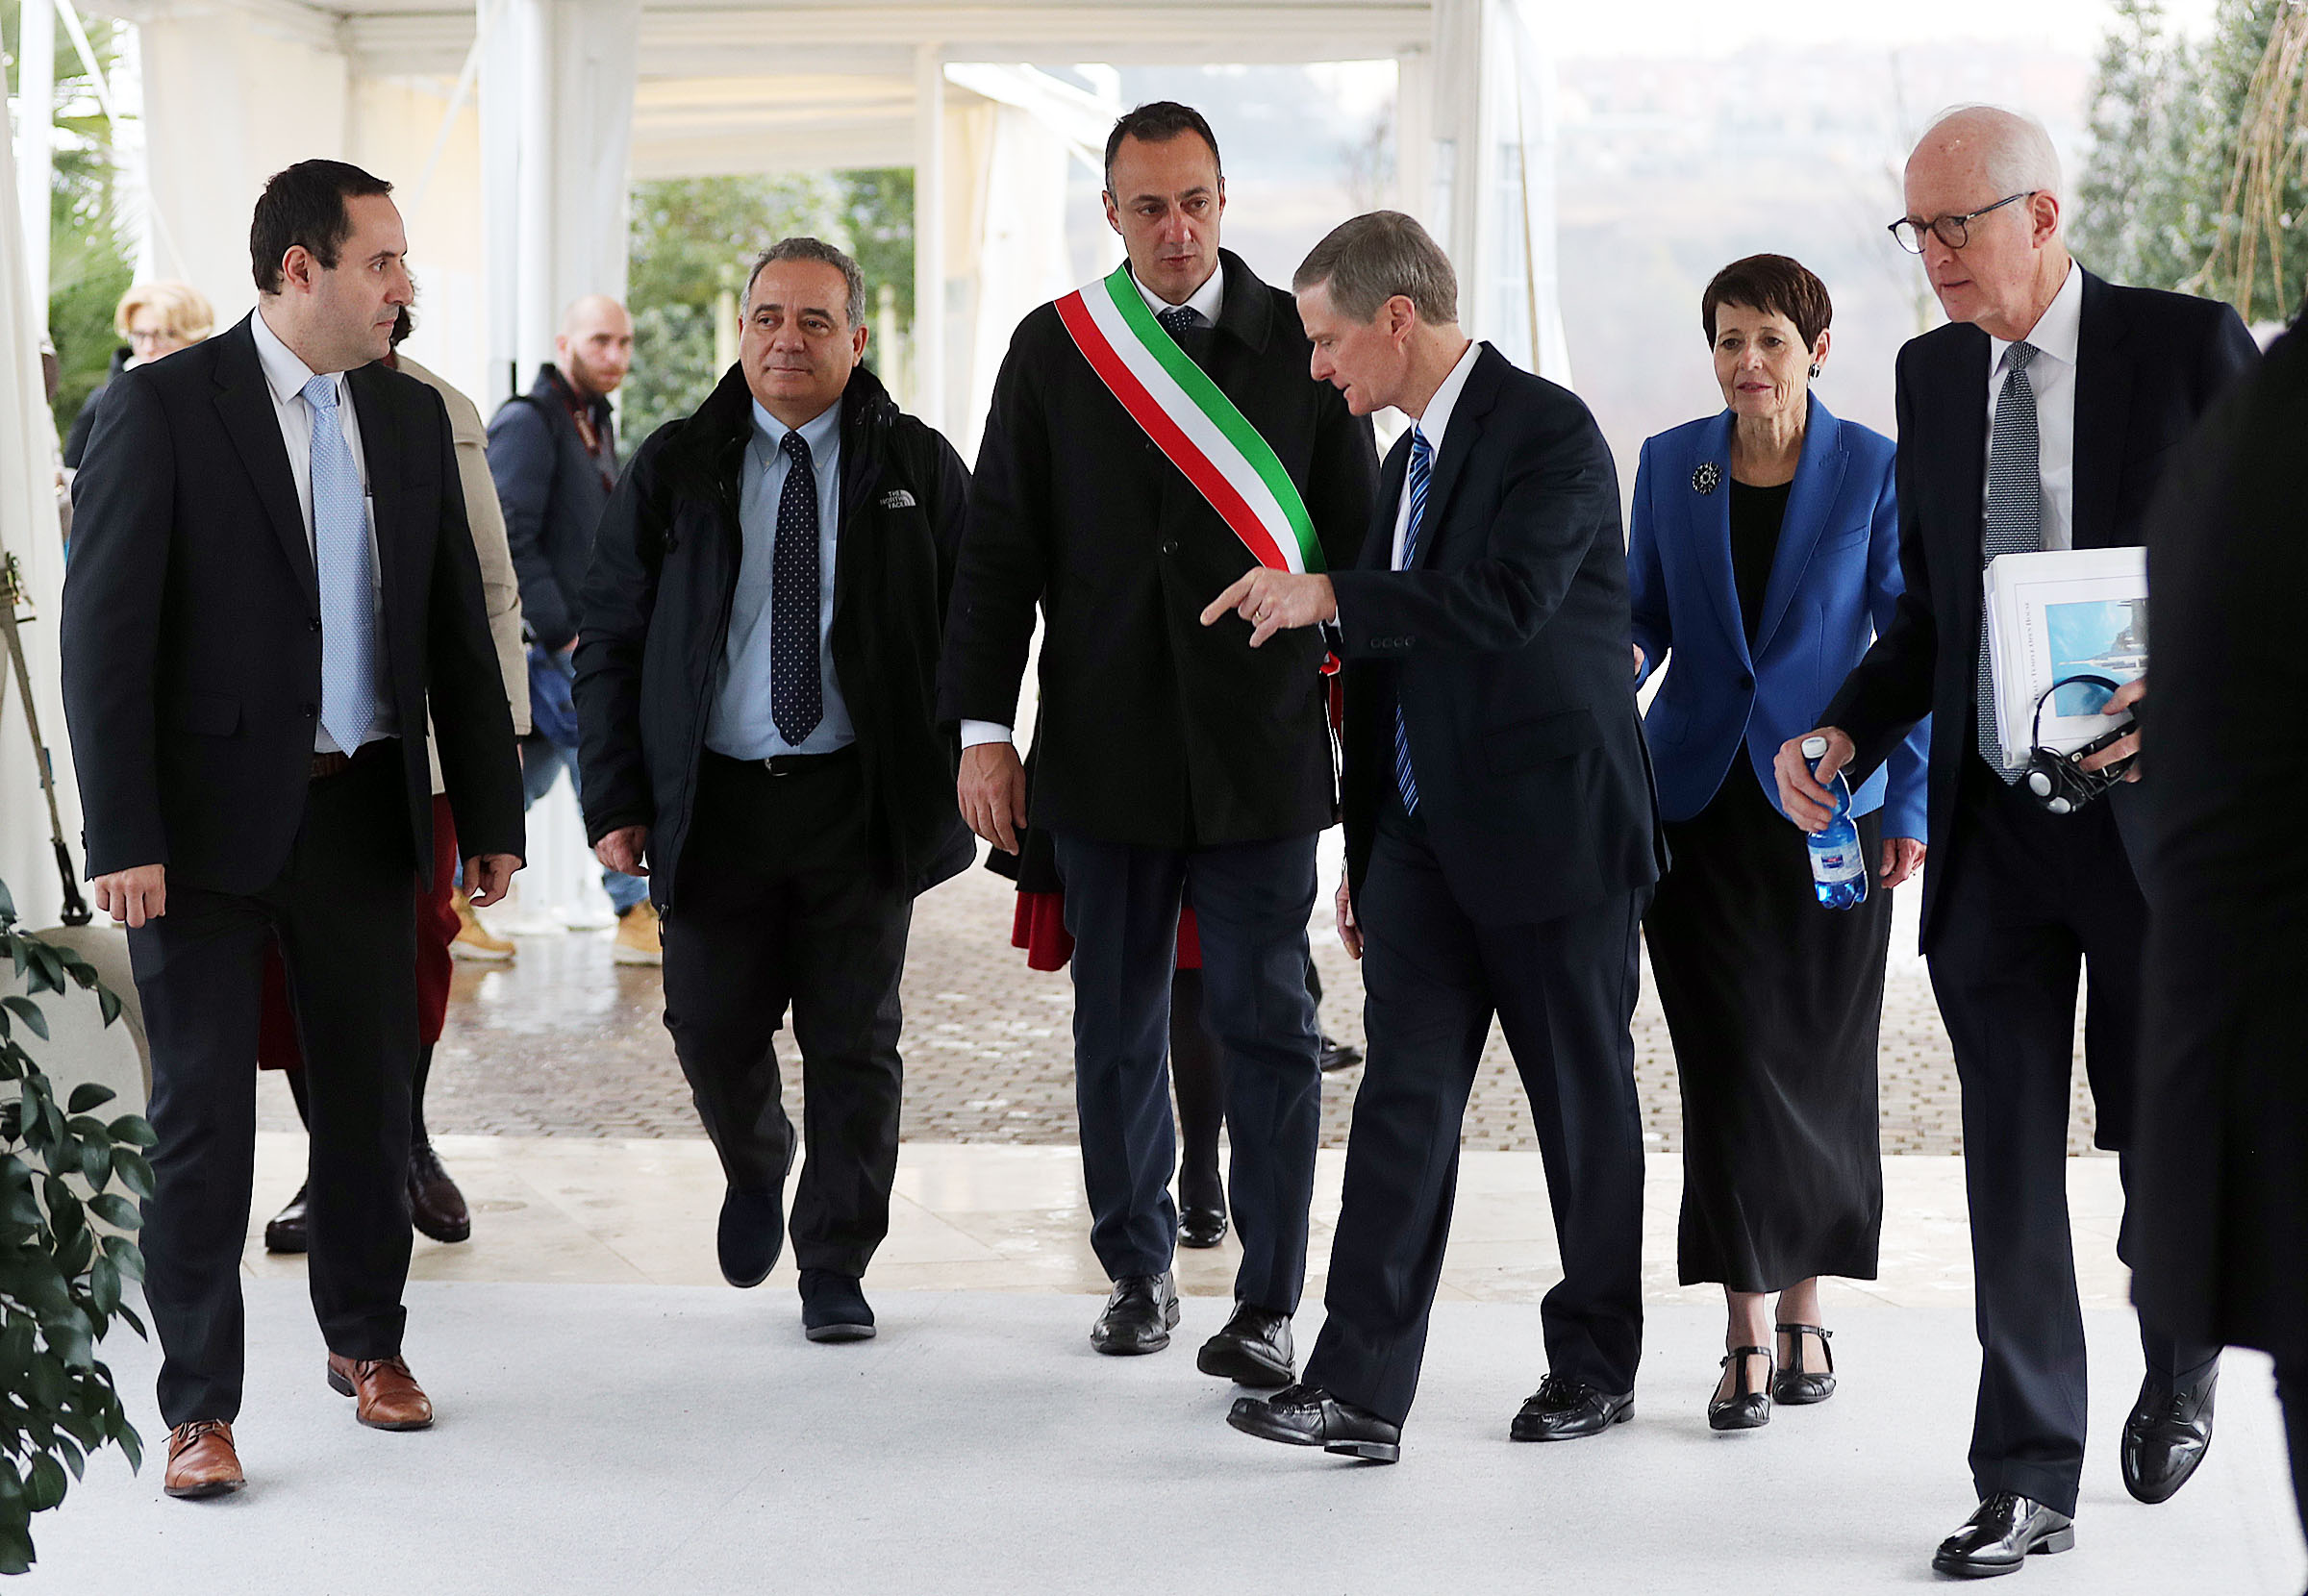 Elder David A. Bednar of the Quorum of the Twelve Apostles of The Church of Jesus Christ of Latter-day Saints leads a tour during the Rome Italy Temple open house on Monday, Jan. 14, 2019. Third from left is President Marcello De Vito, president of the Rome City Council. Second from left is President Giovanni Caudo, president of the Third Municipality of Rome.